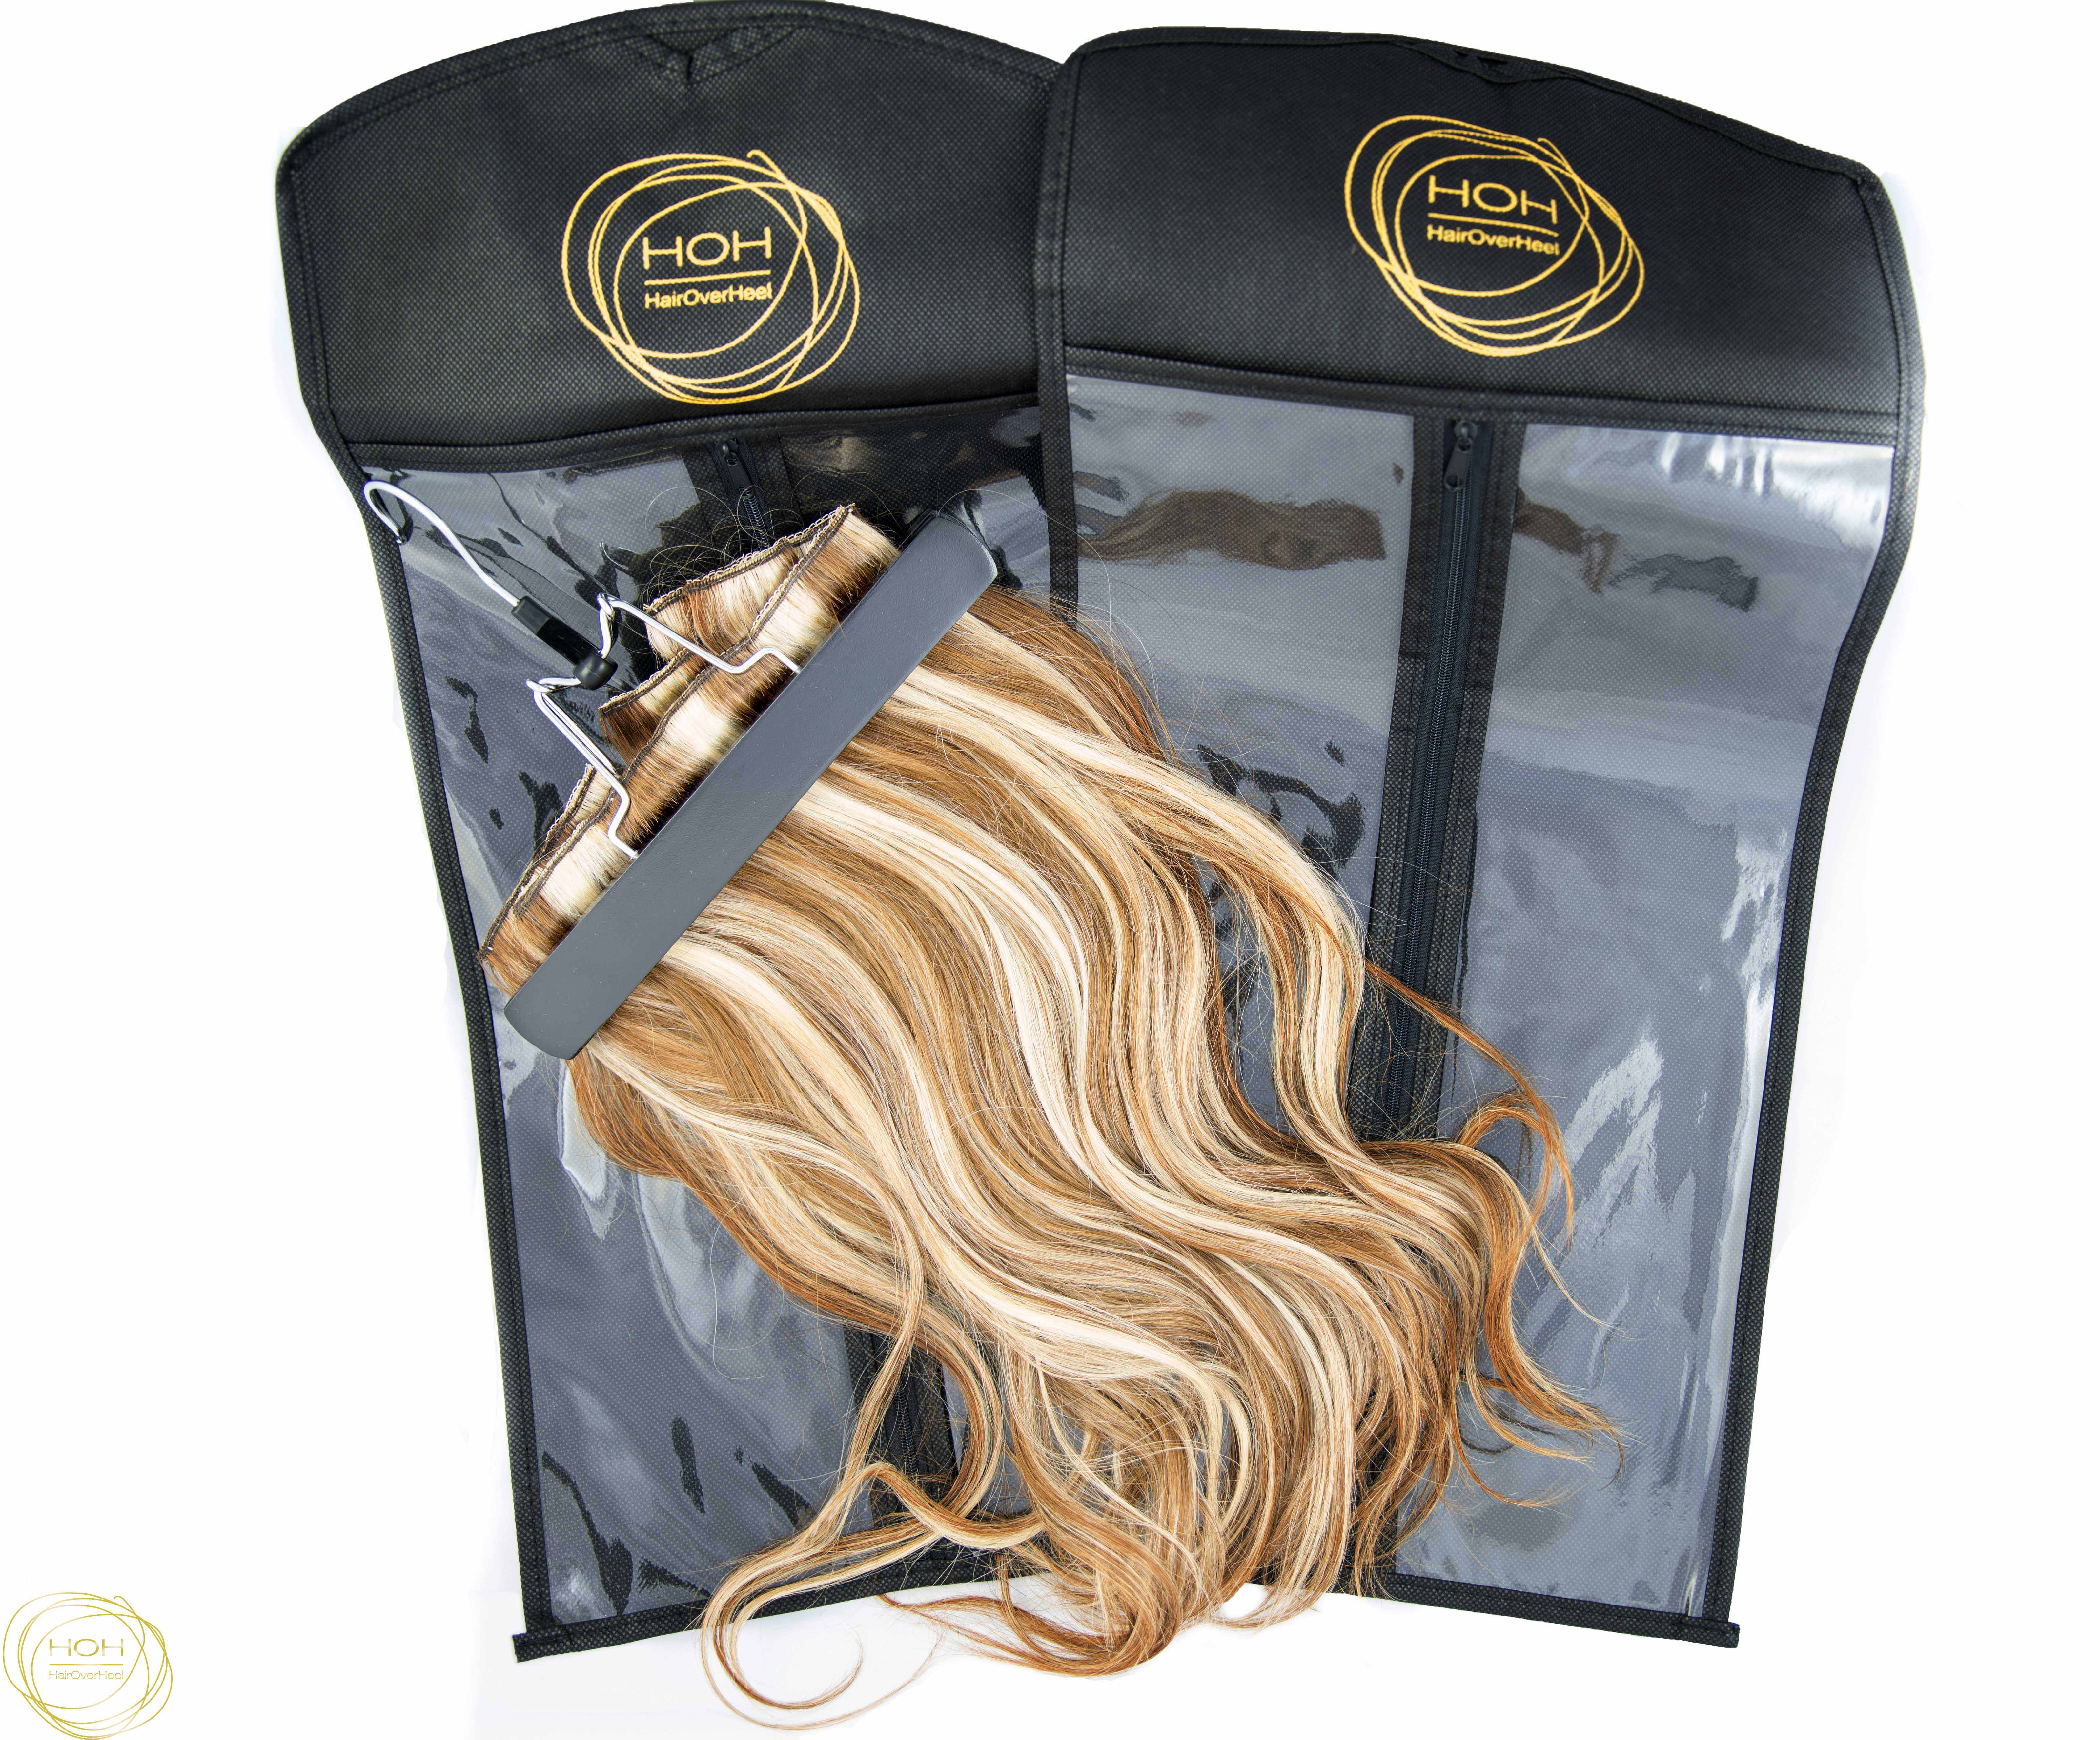 The Best Way To Store Your Luxury Human Hair Extensions